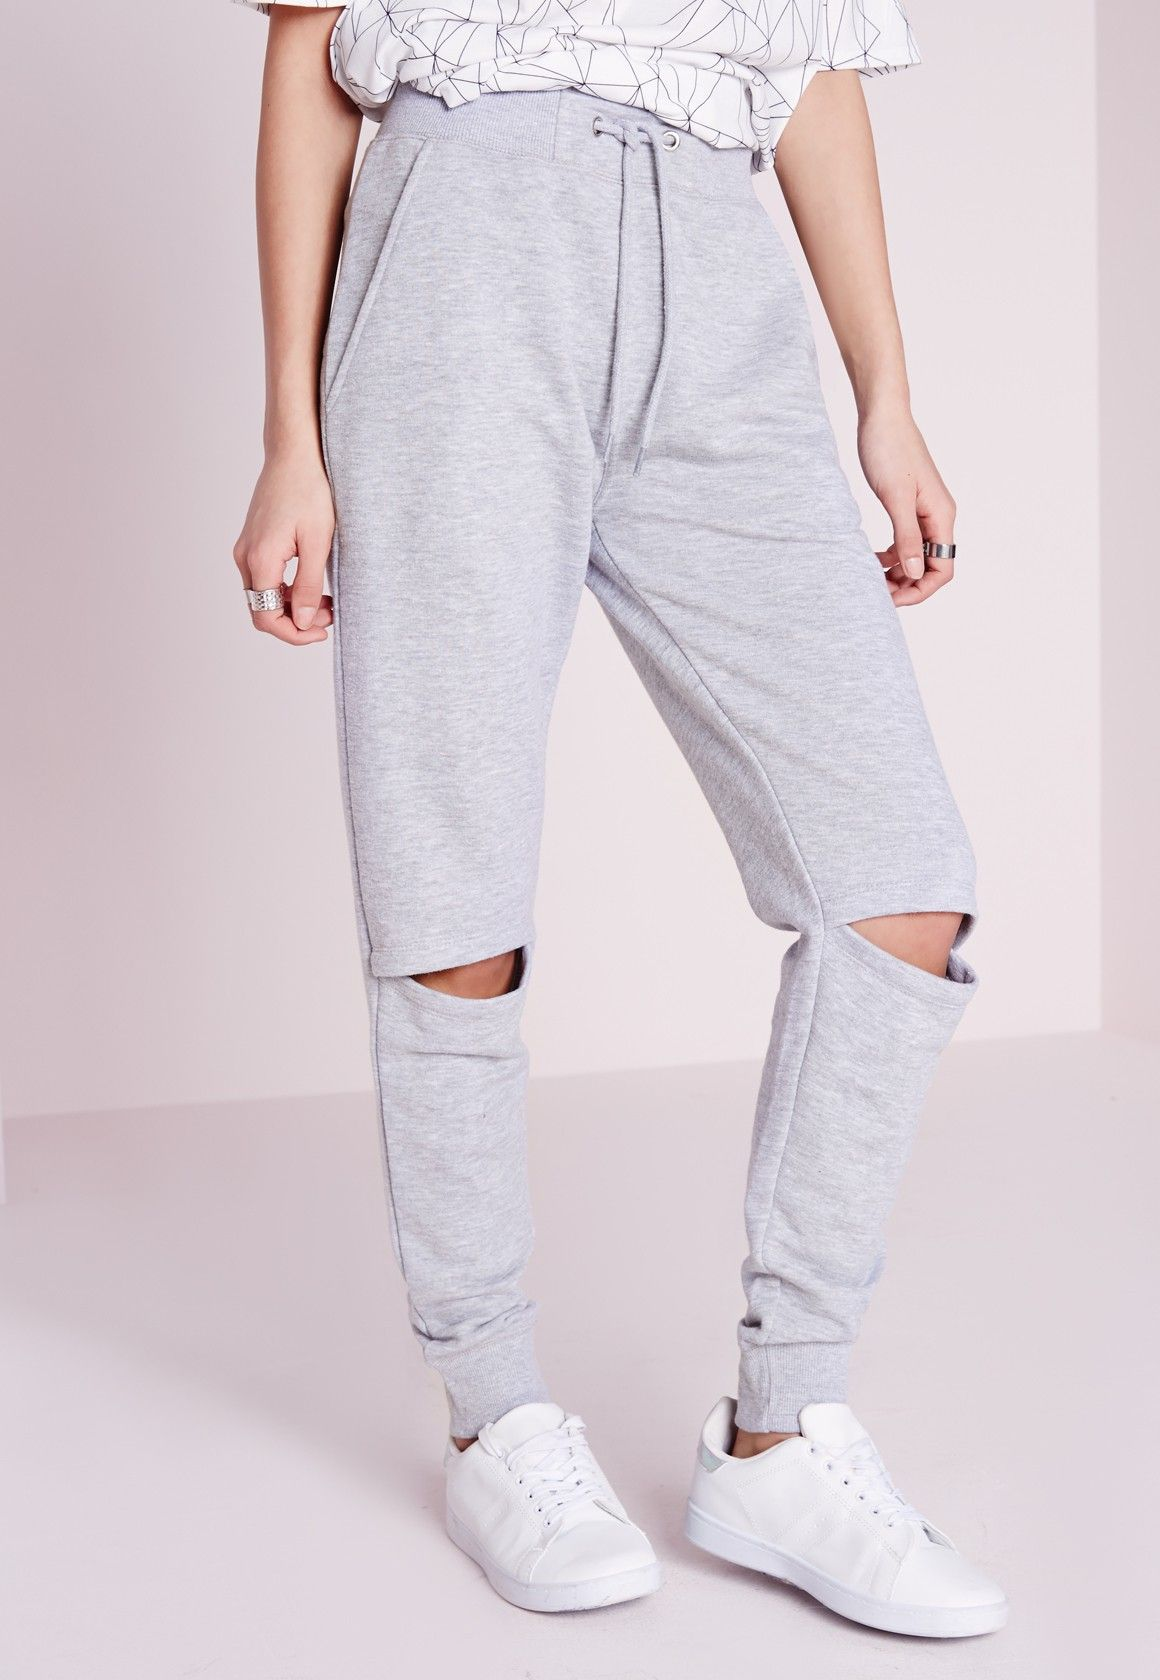 a623cfa4a40c2 Missguided - Rip Knee Joggers Light Grey | 2017 | Ripped knees ...